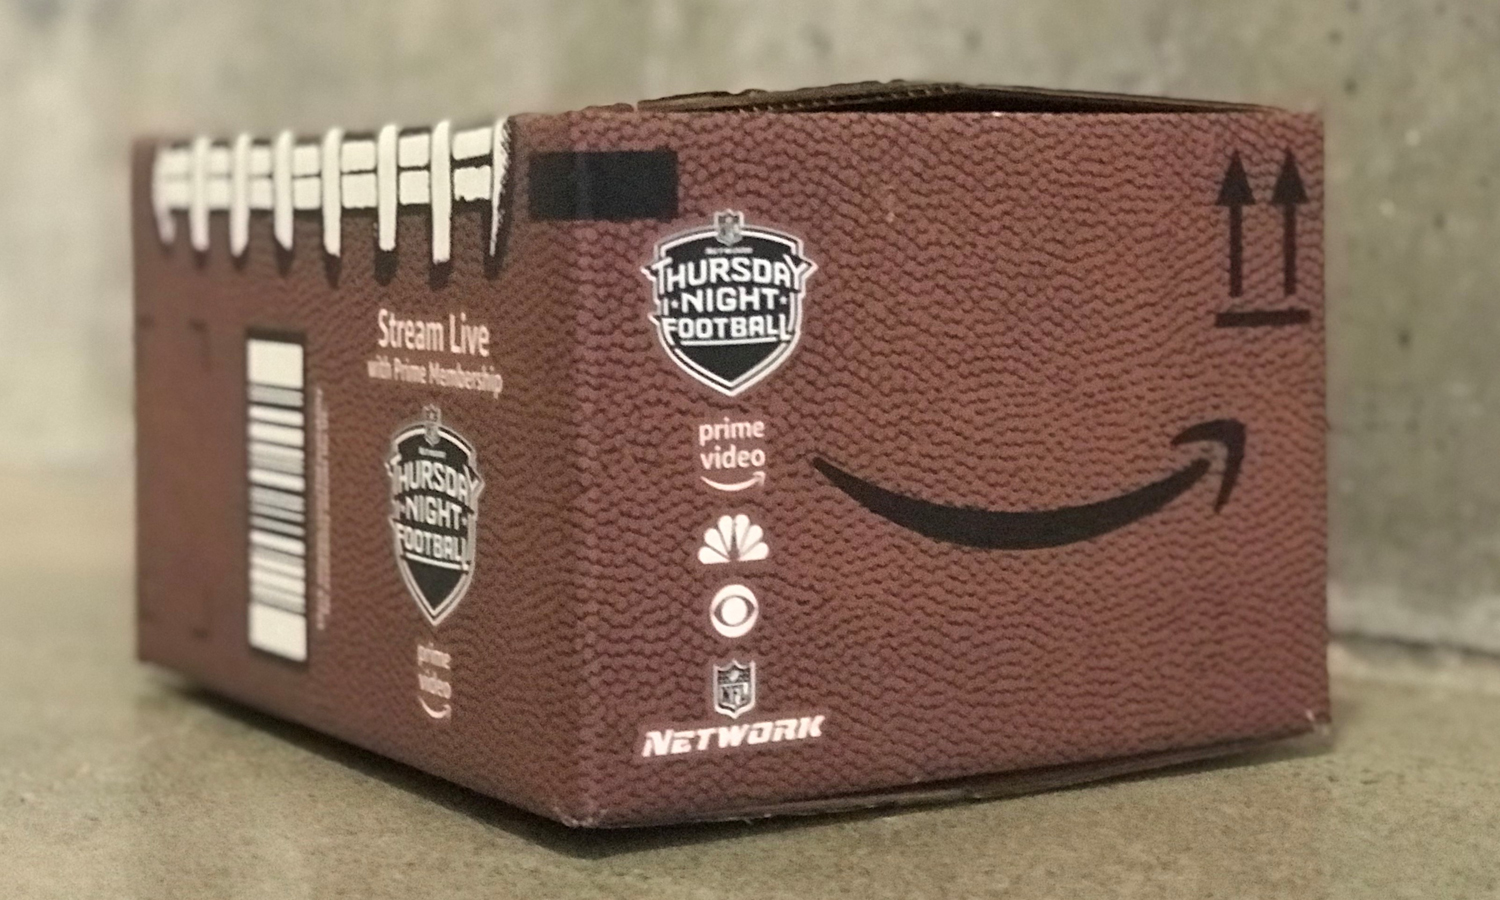 Thursday night football is back on on prime video,* available to stream at no additional cost. Amazon Sports Execs Pleased With Thursday Night Football Quality Numbers Through First Half Of Season